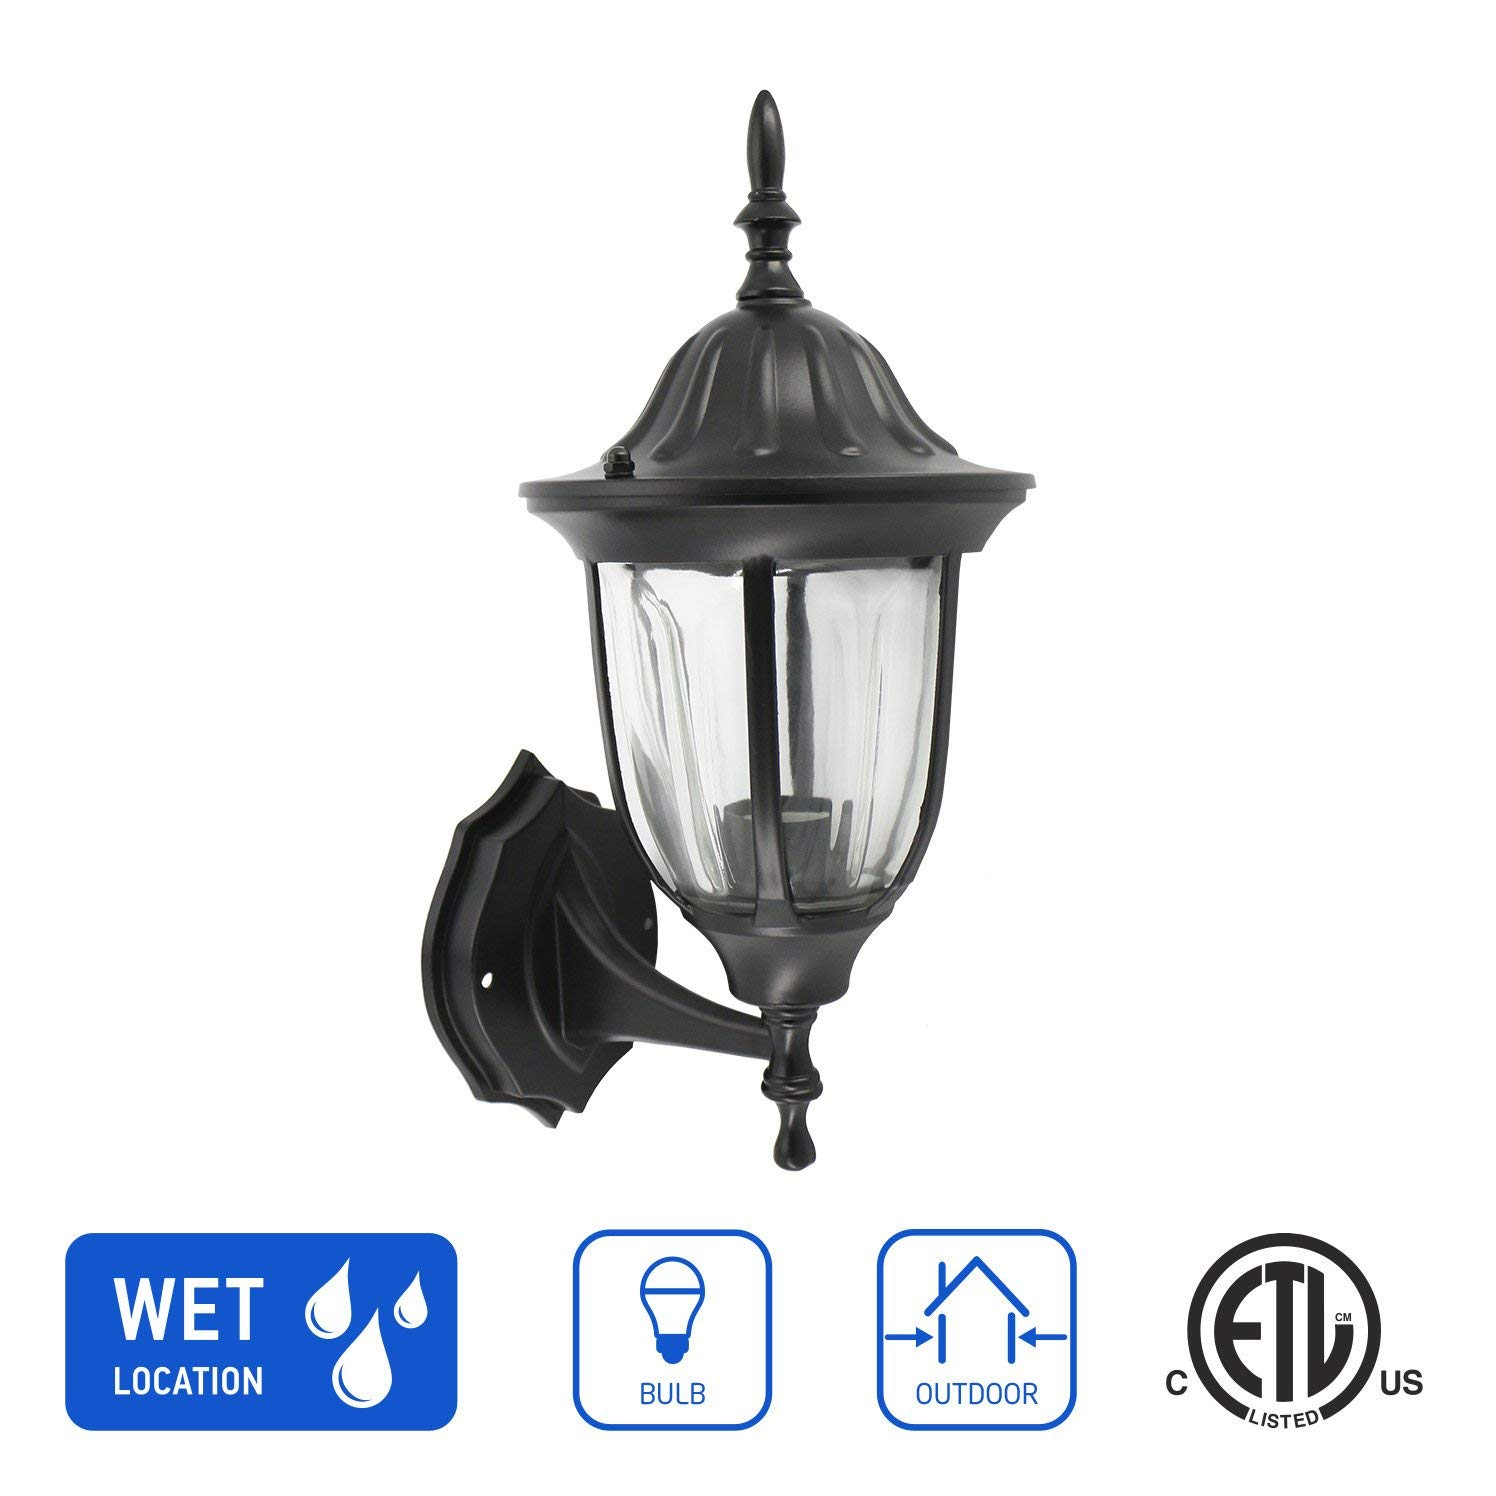 IN HOME 1-Light Outdoor Exterior Wall Up Lantern, Traditional Porch Patio Lighting Fixture L03 with One E26 Base, Water-Proof, Black Cast Aluminum Housing, Clear Glass Panels, ETL Listed